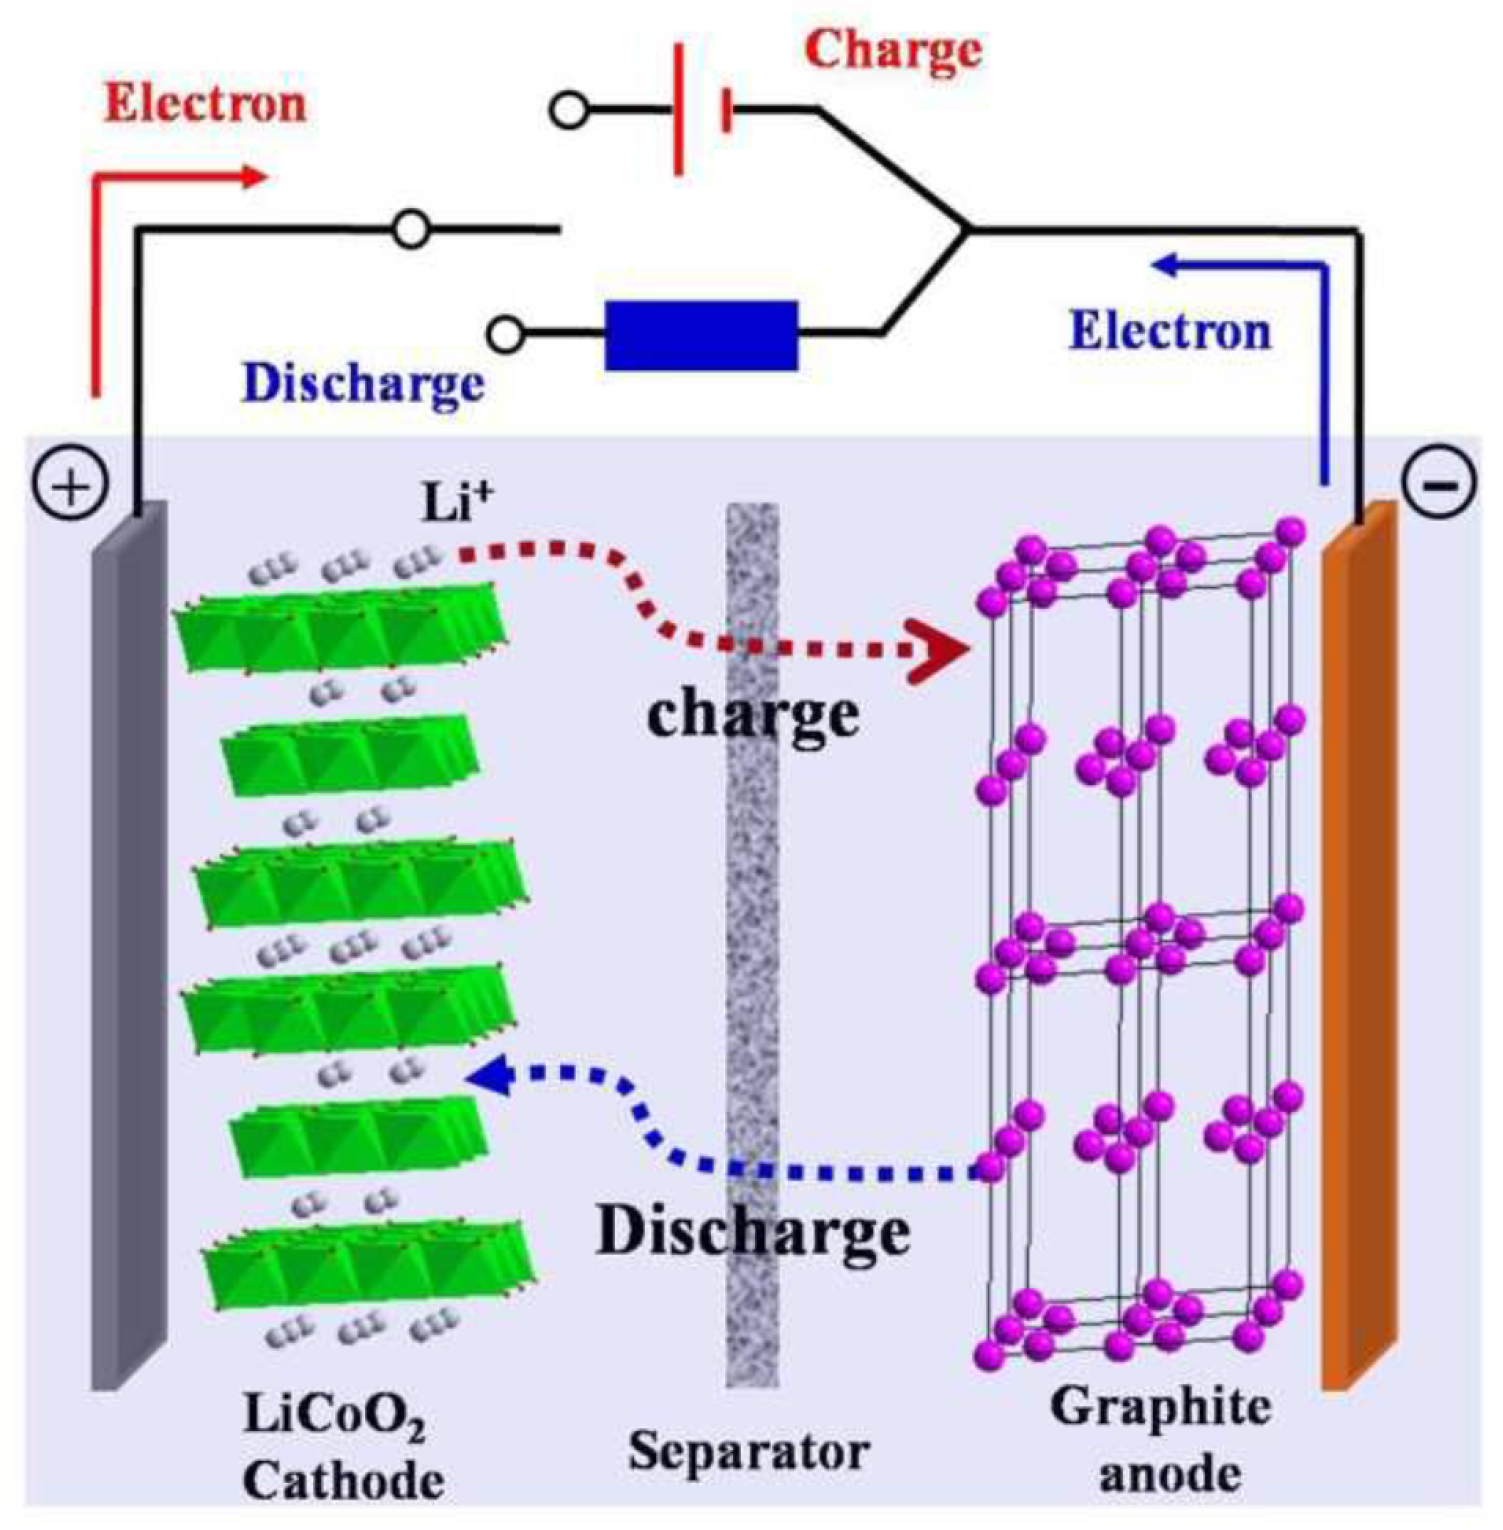 Energies Free Full Text Cost Projection Of State The Art Electric Car Battery Diagram No